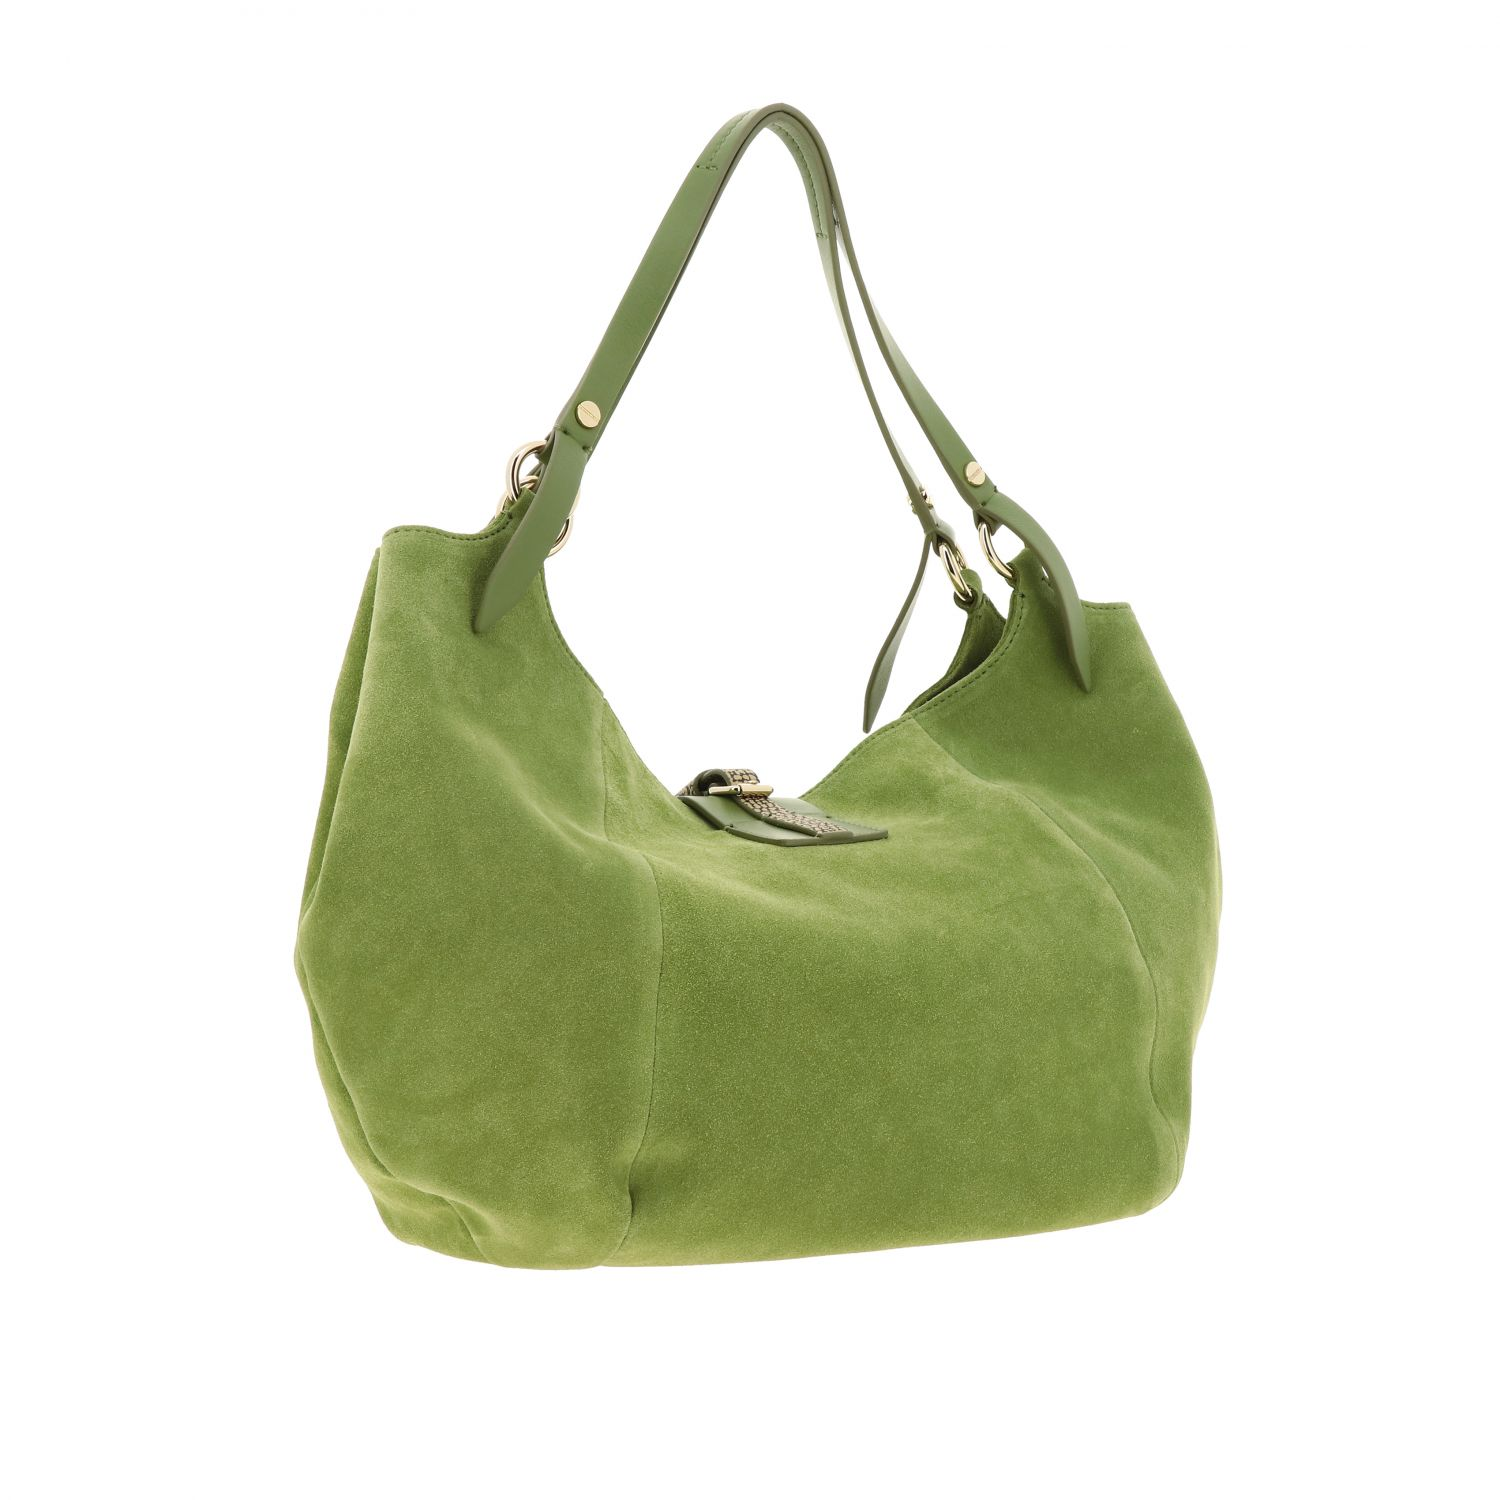 Borbonese shoulder bag in suede and leather green 3